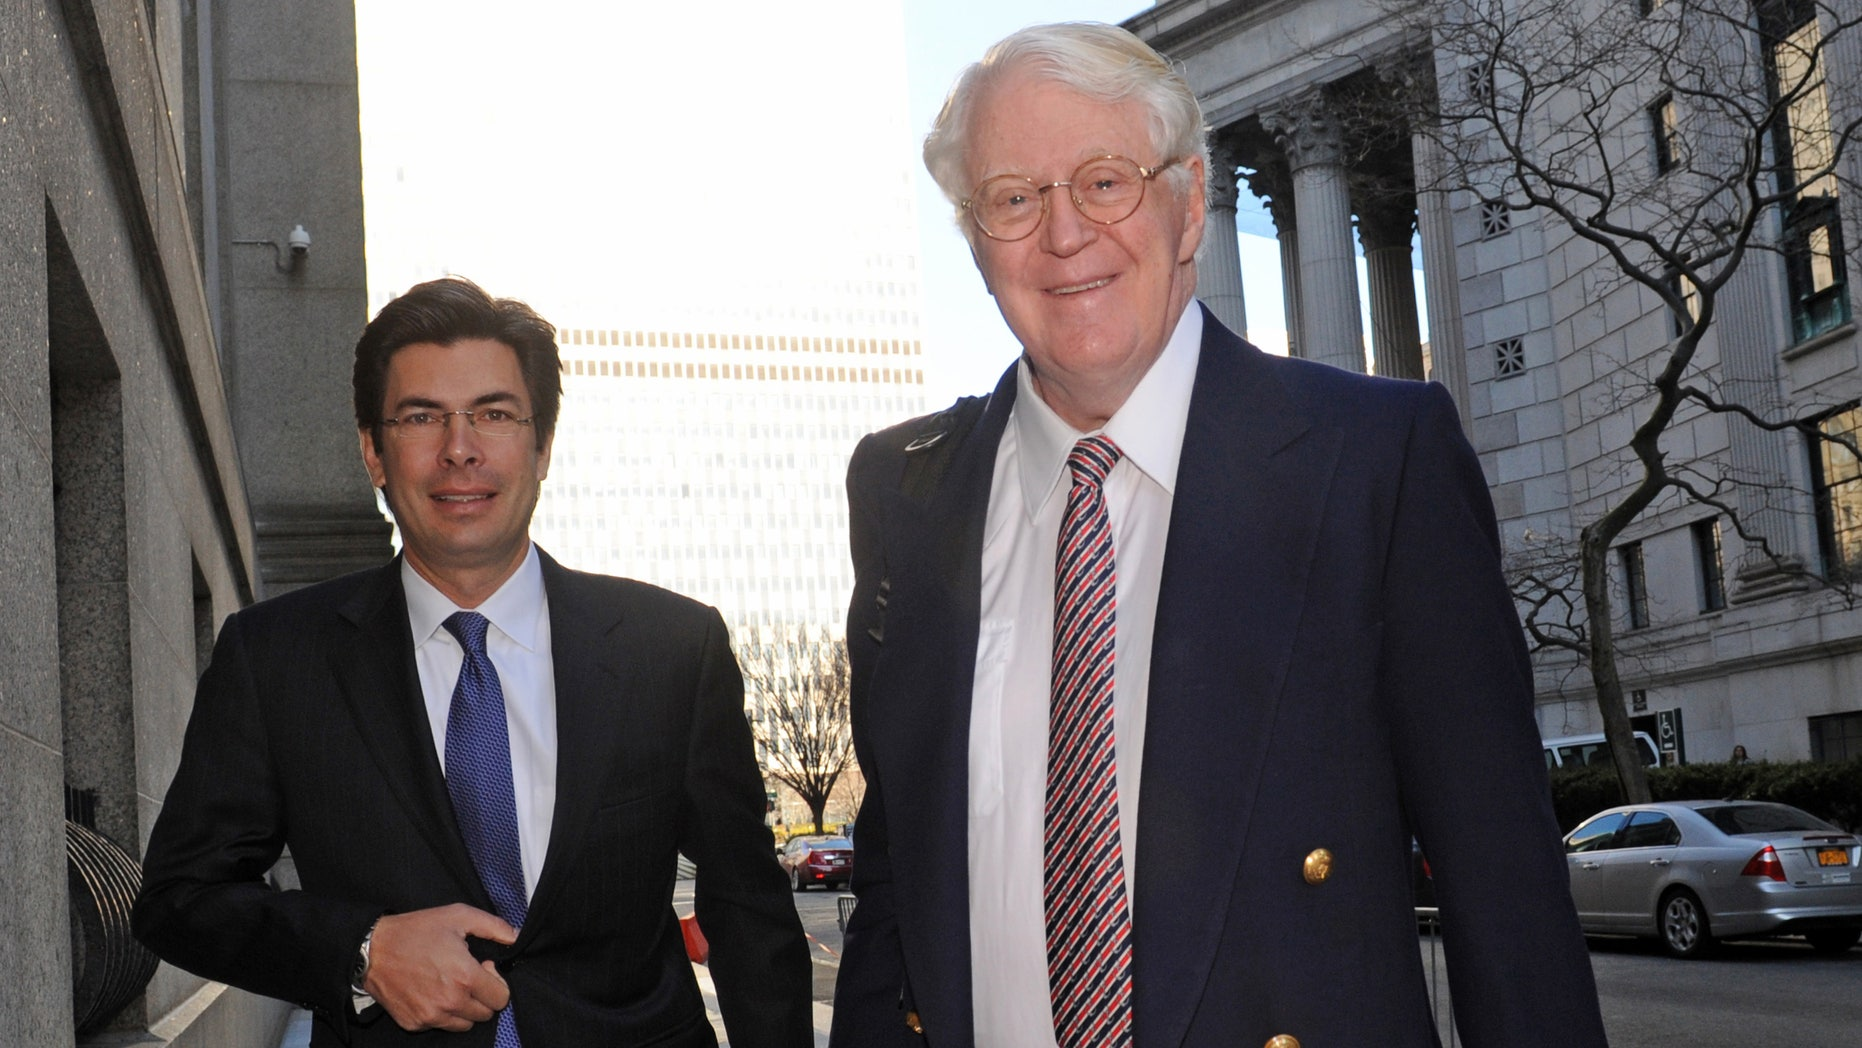 March 27, 2013: Florida energy magnate William Koch, right, arrives at Manhattan federal court in New York.